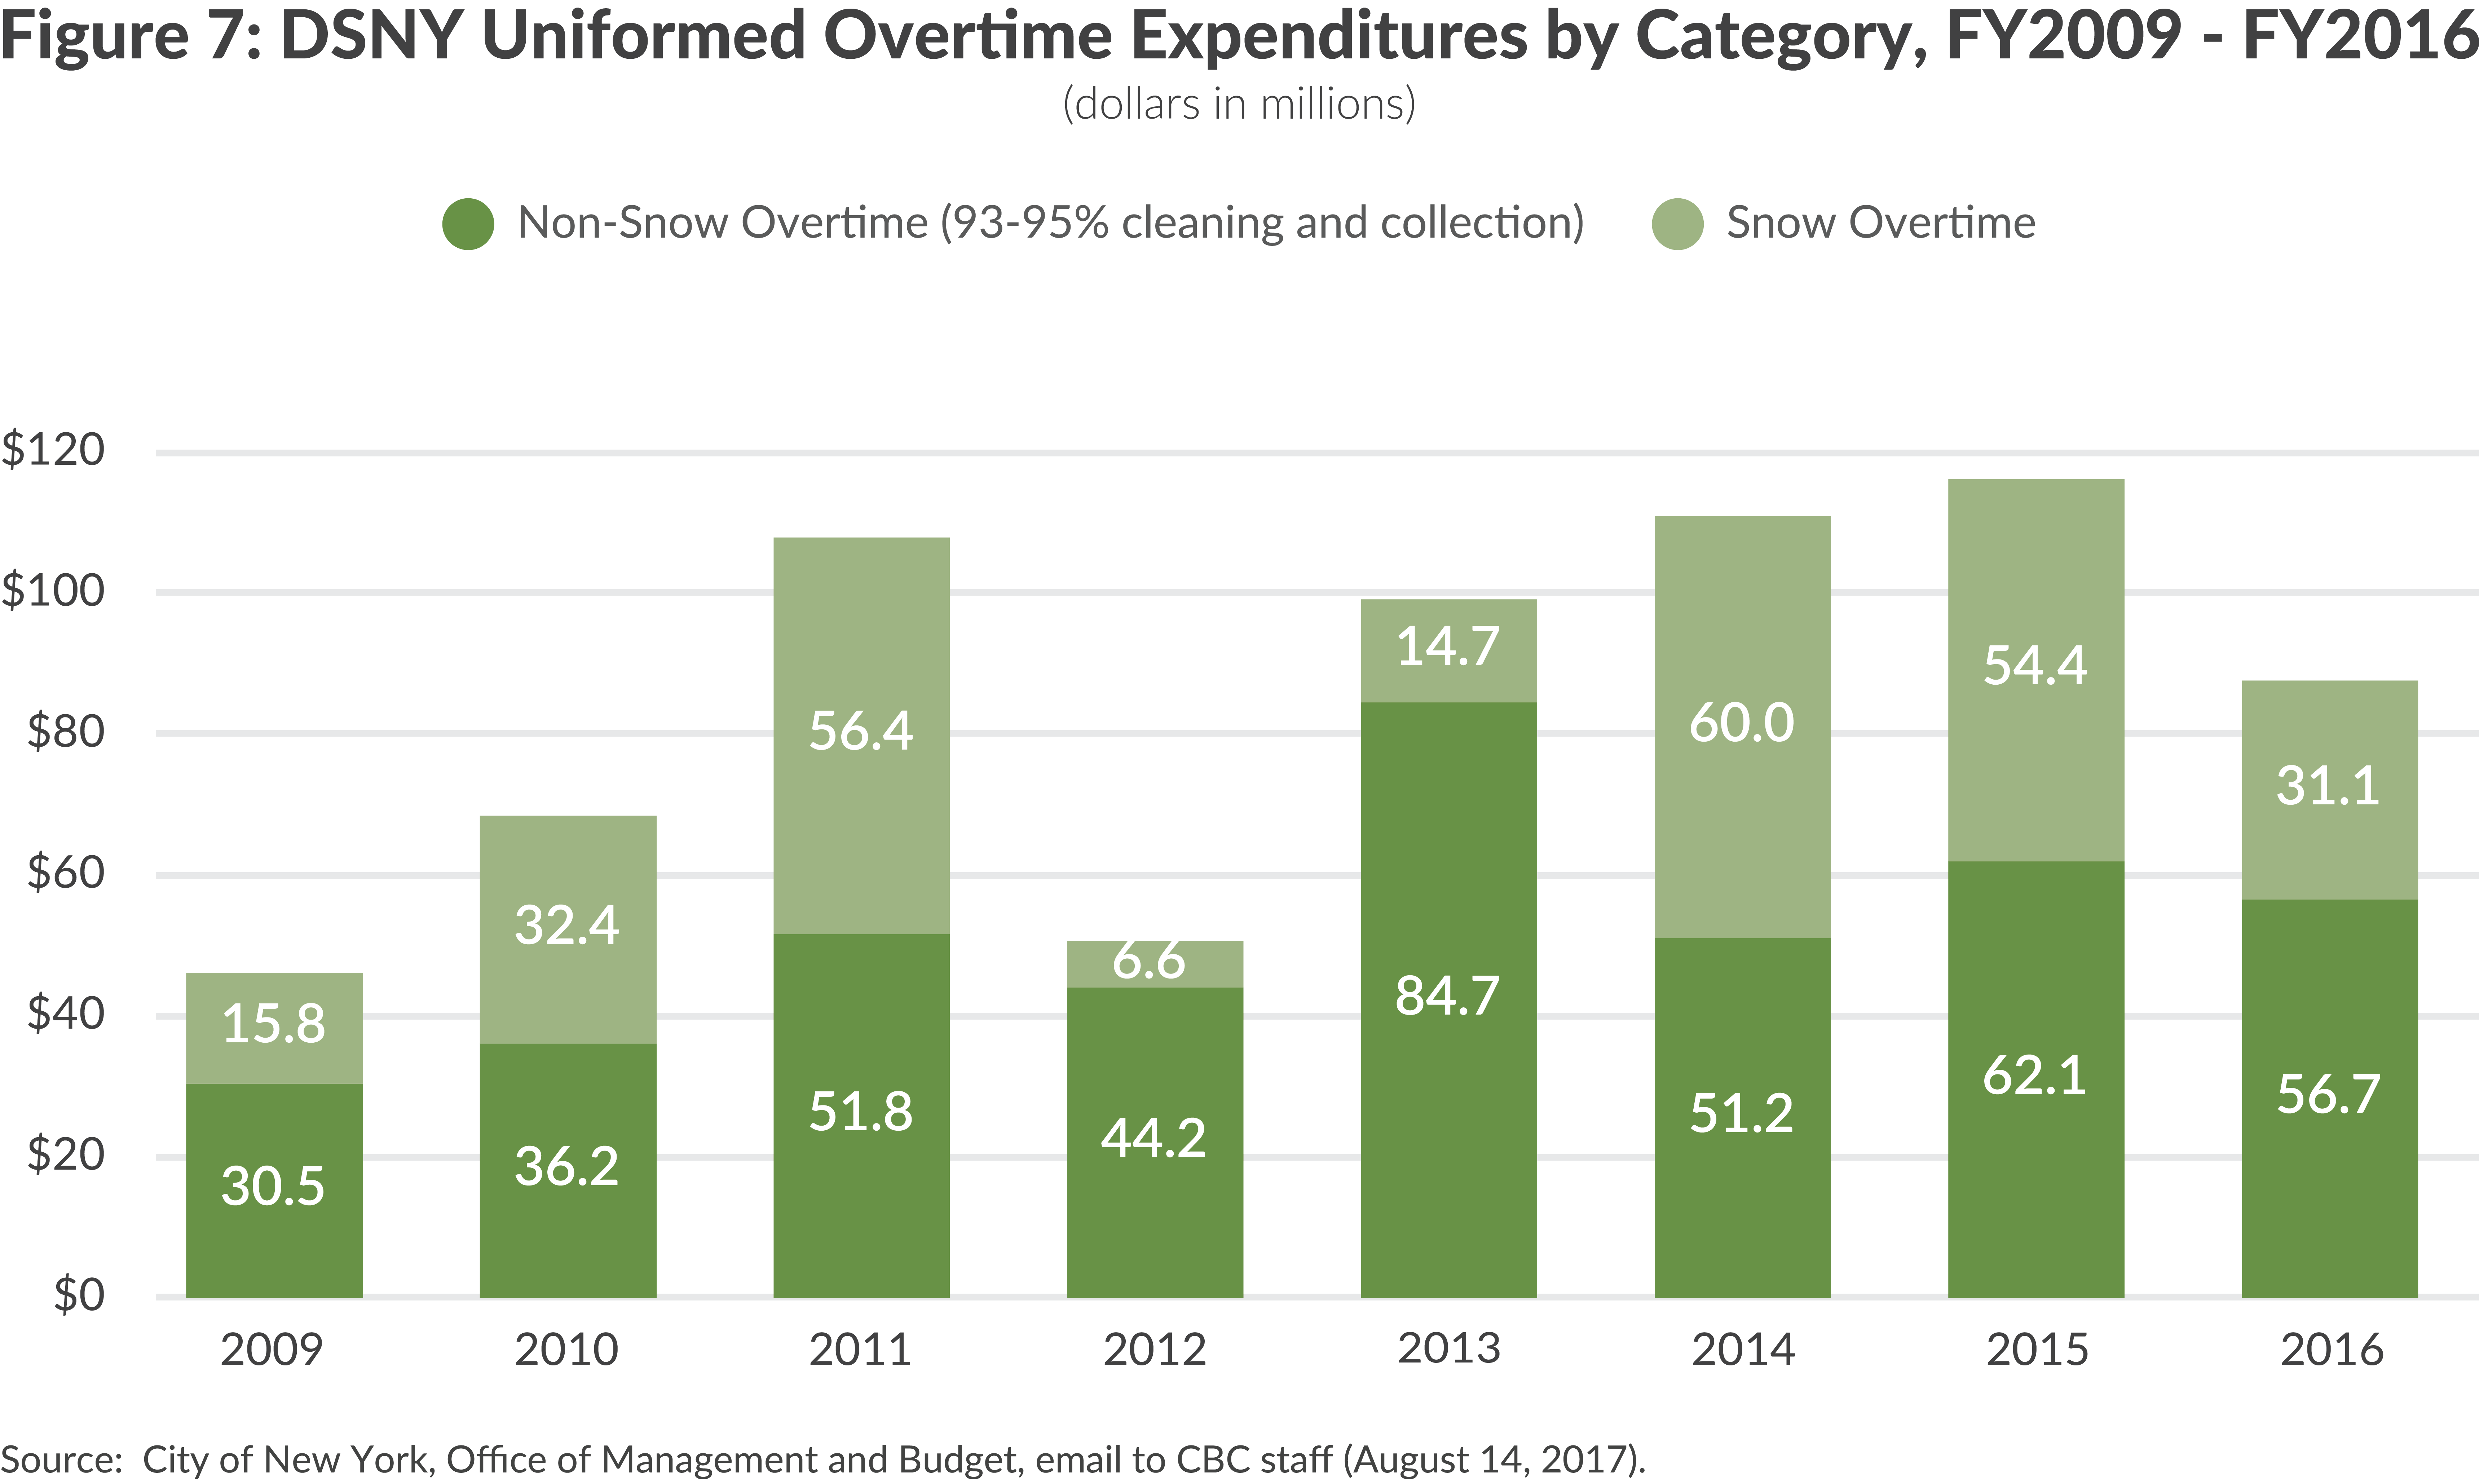 Figure 7: DSNY Uniformed Overtime Expenditures by Category, FY2009 - FY2016